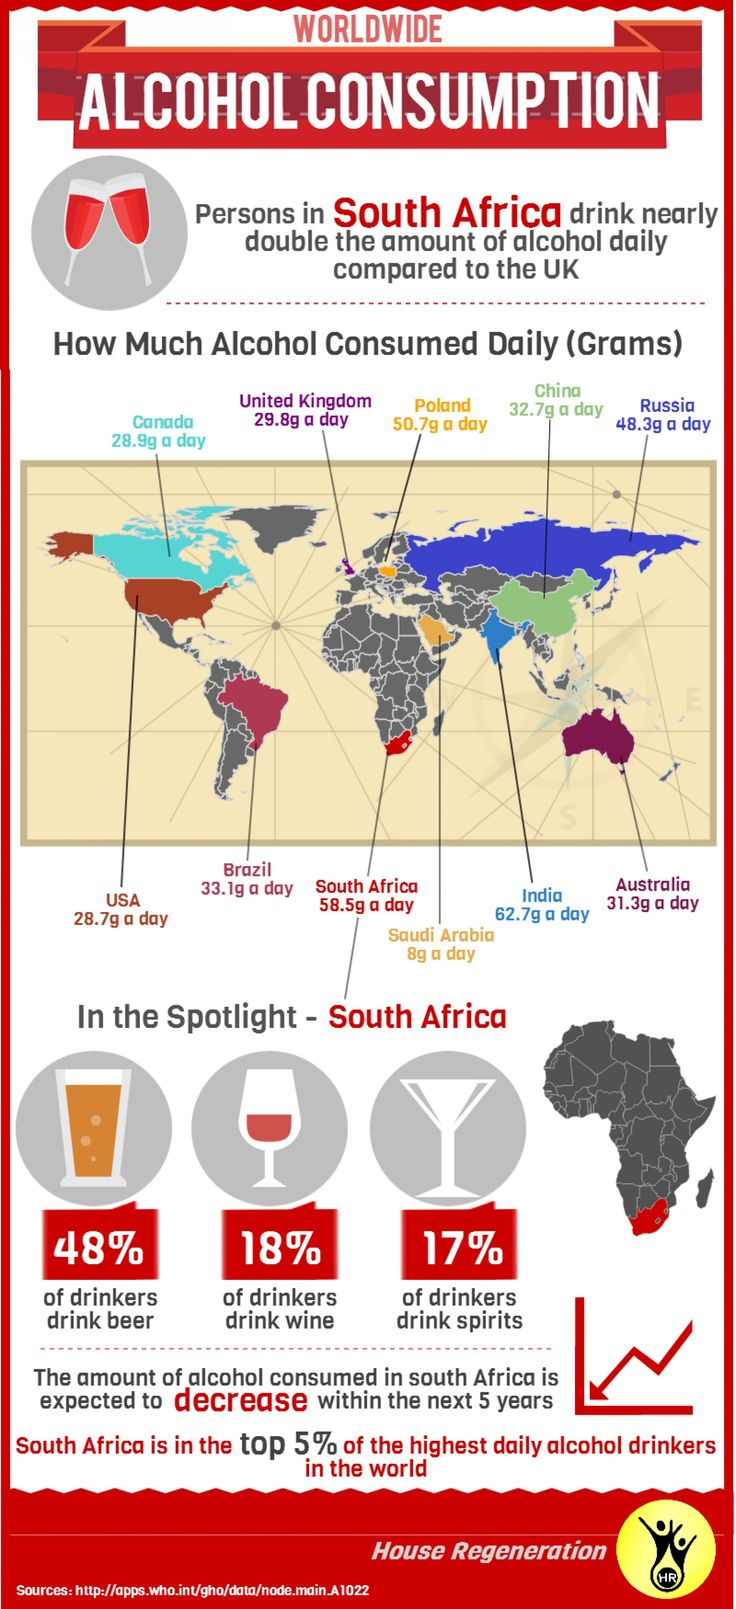 http://www.hr7.co.za - Alcohol Consumption & Addiction Facts